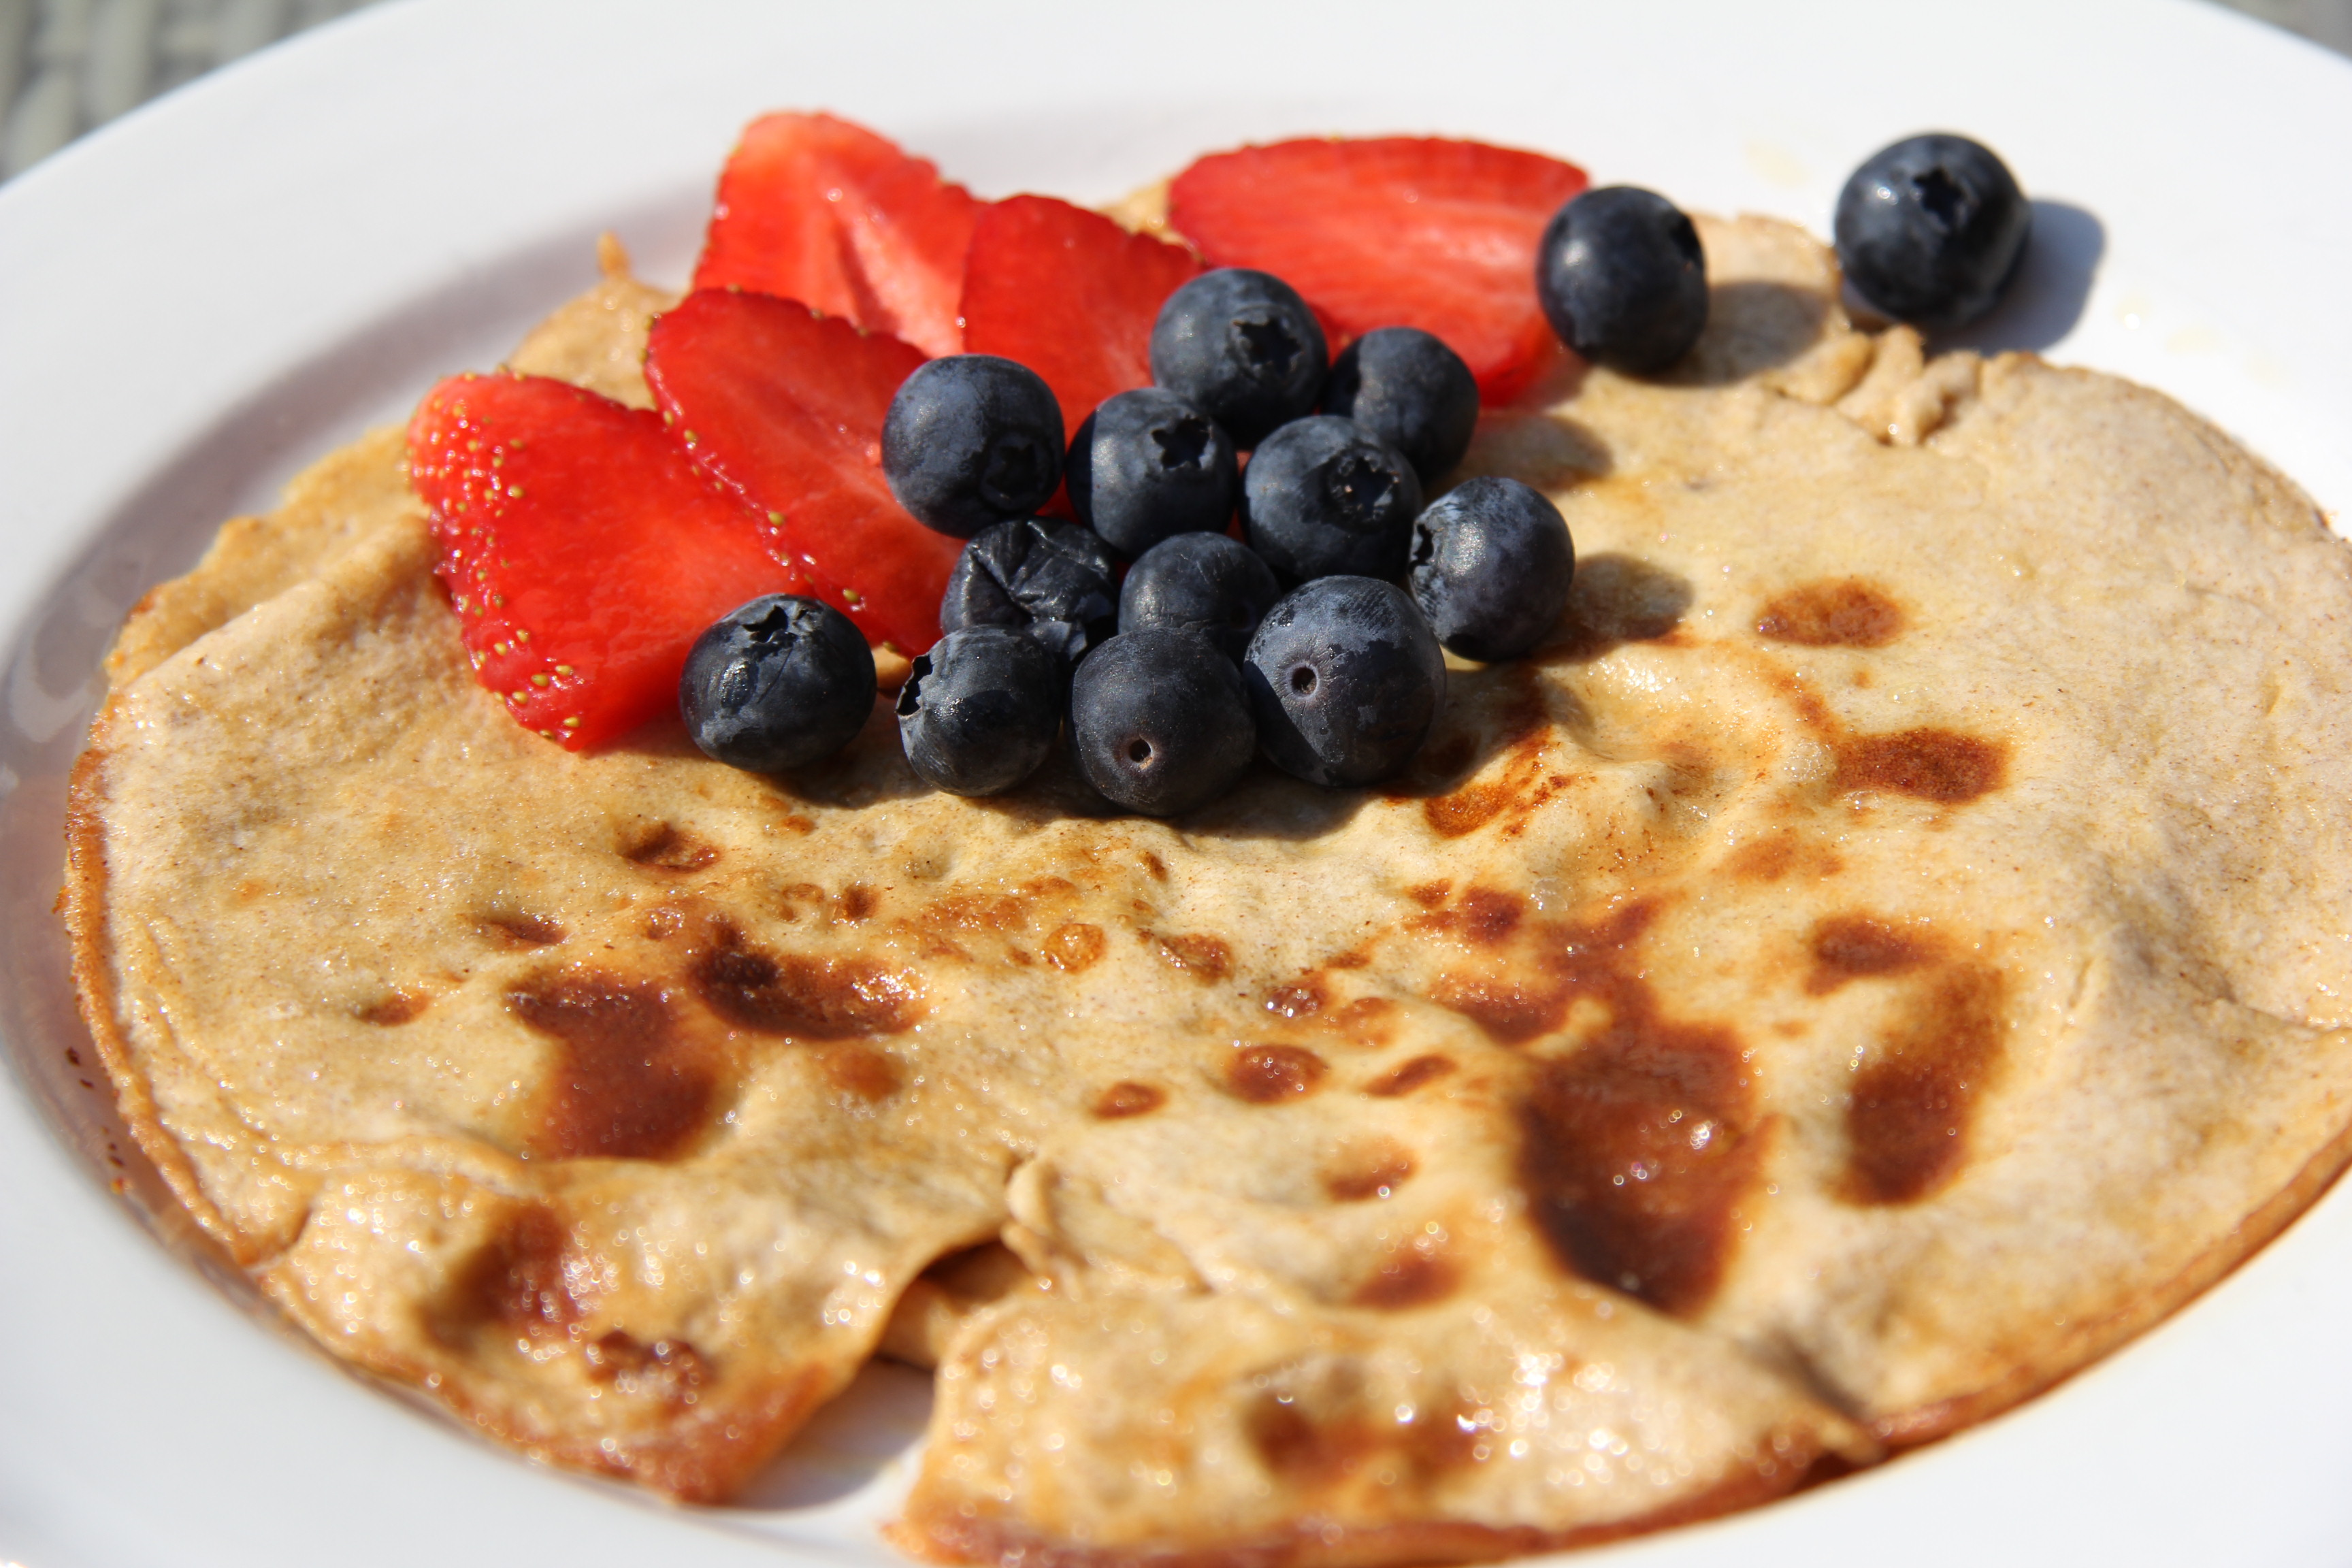 ... day with a low carb and gluten free pancake i love the versaltity of